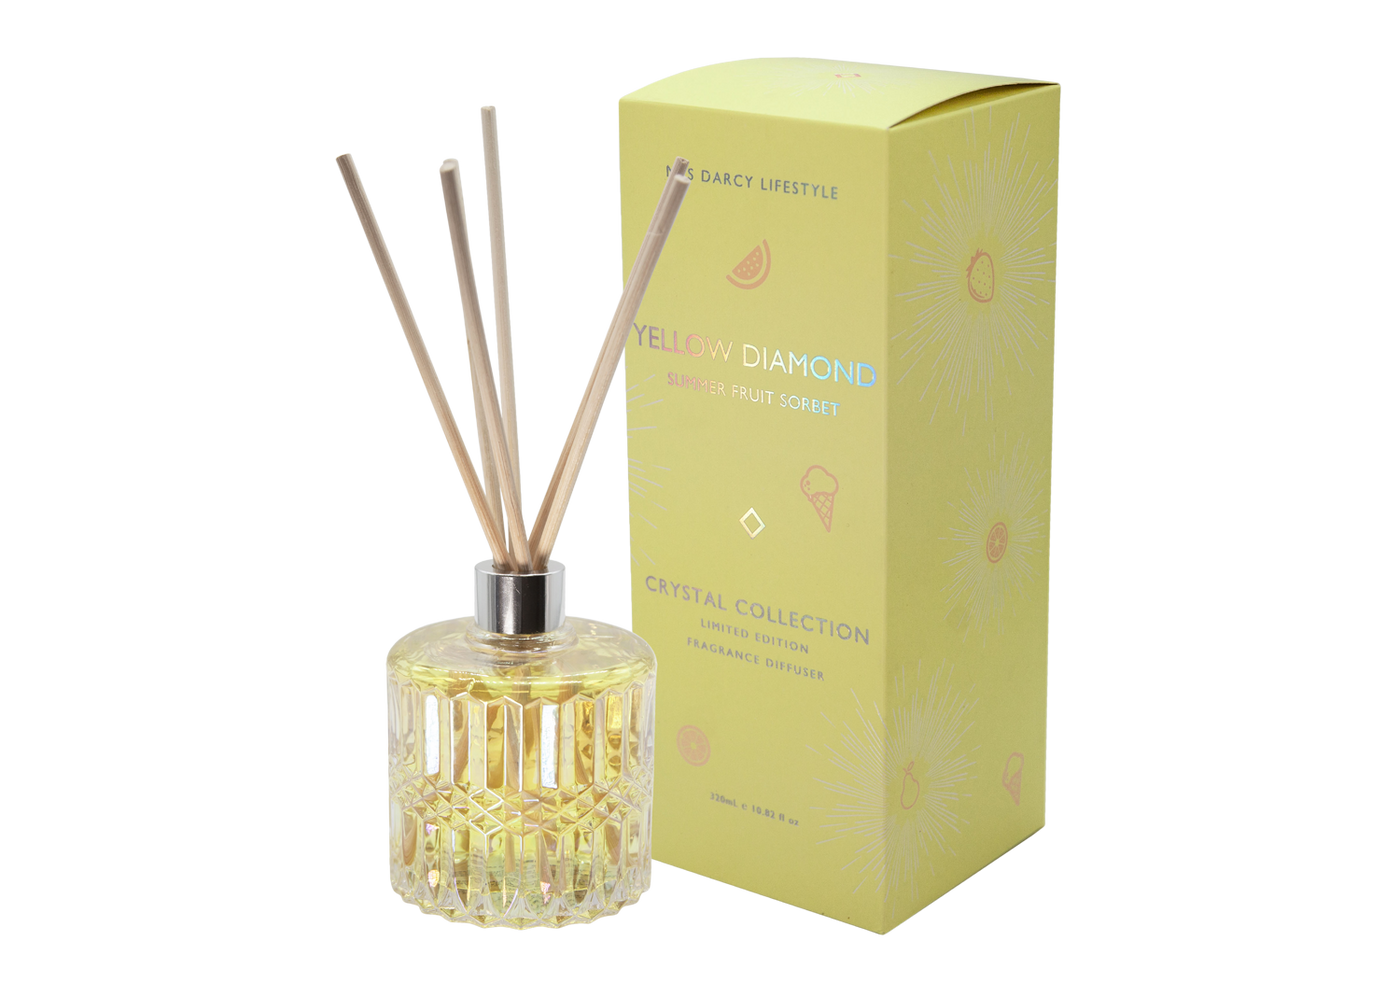 Yellow Diamond Diffuser - Summer Fruit Sorbet